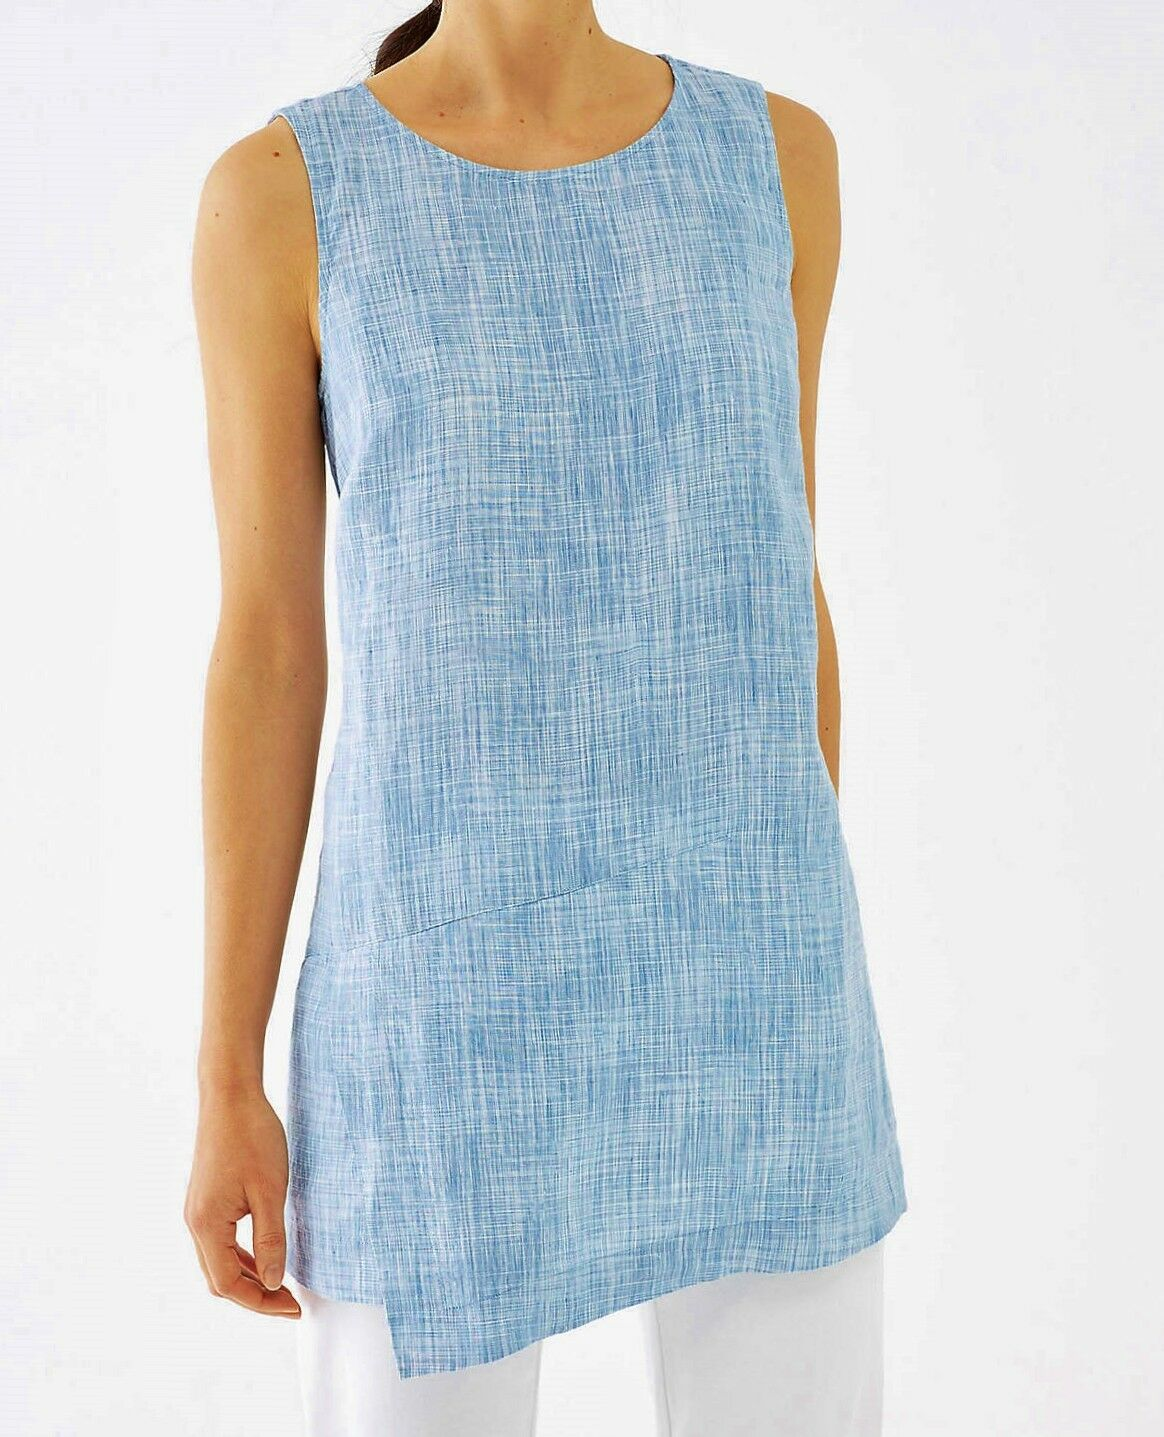 J Jill PURE JILL oben XL Linen Wrap Tunic Blau Sleeveless NEW Relaxed May Fit 1X